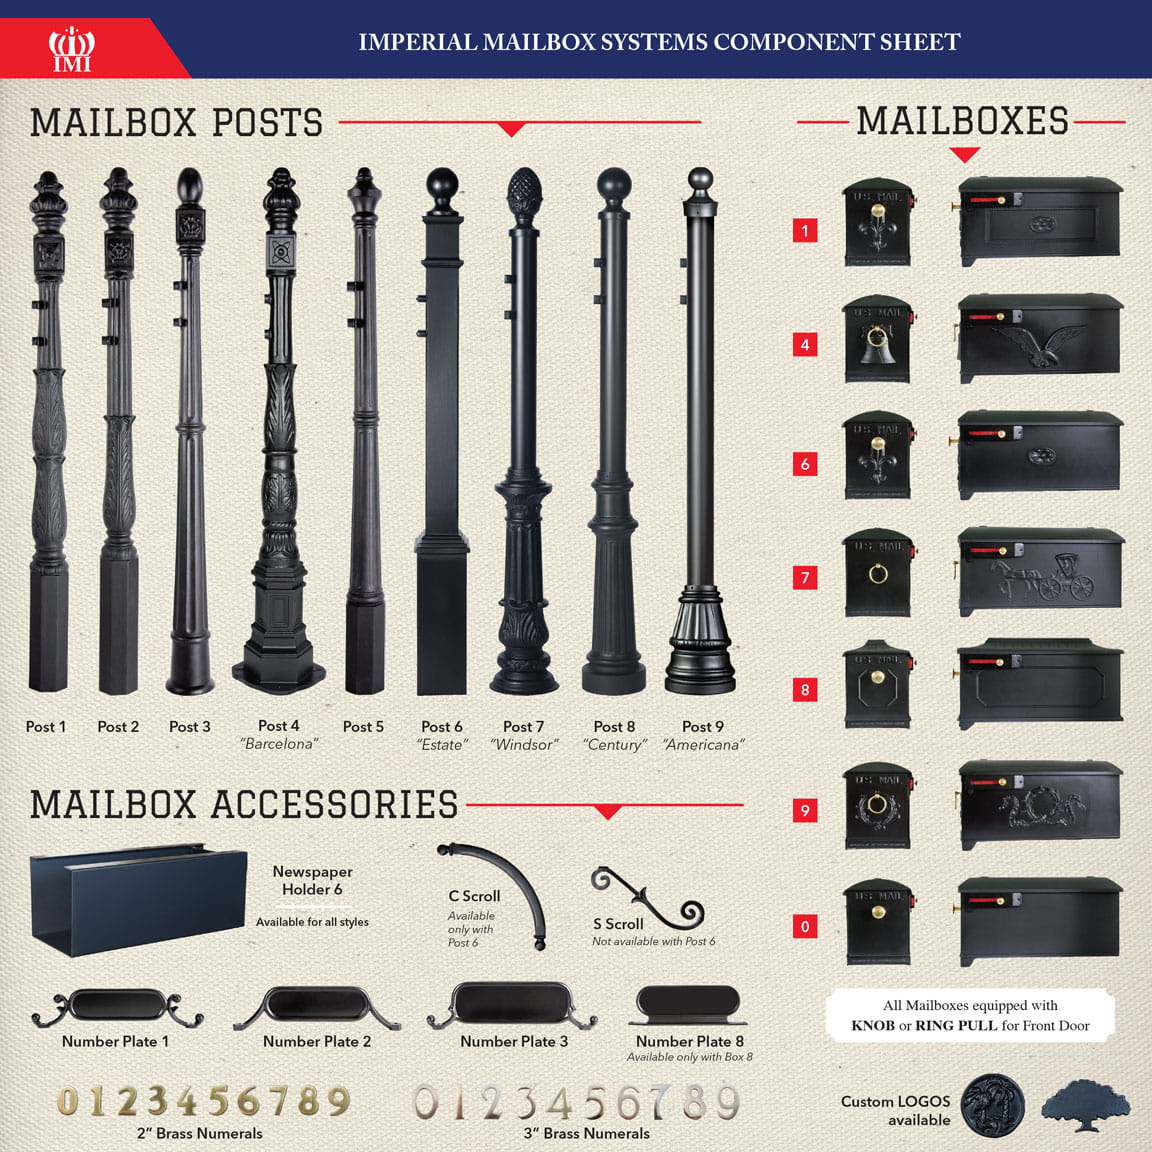 Mailbox Systems